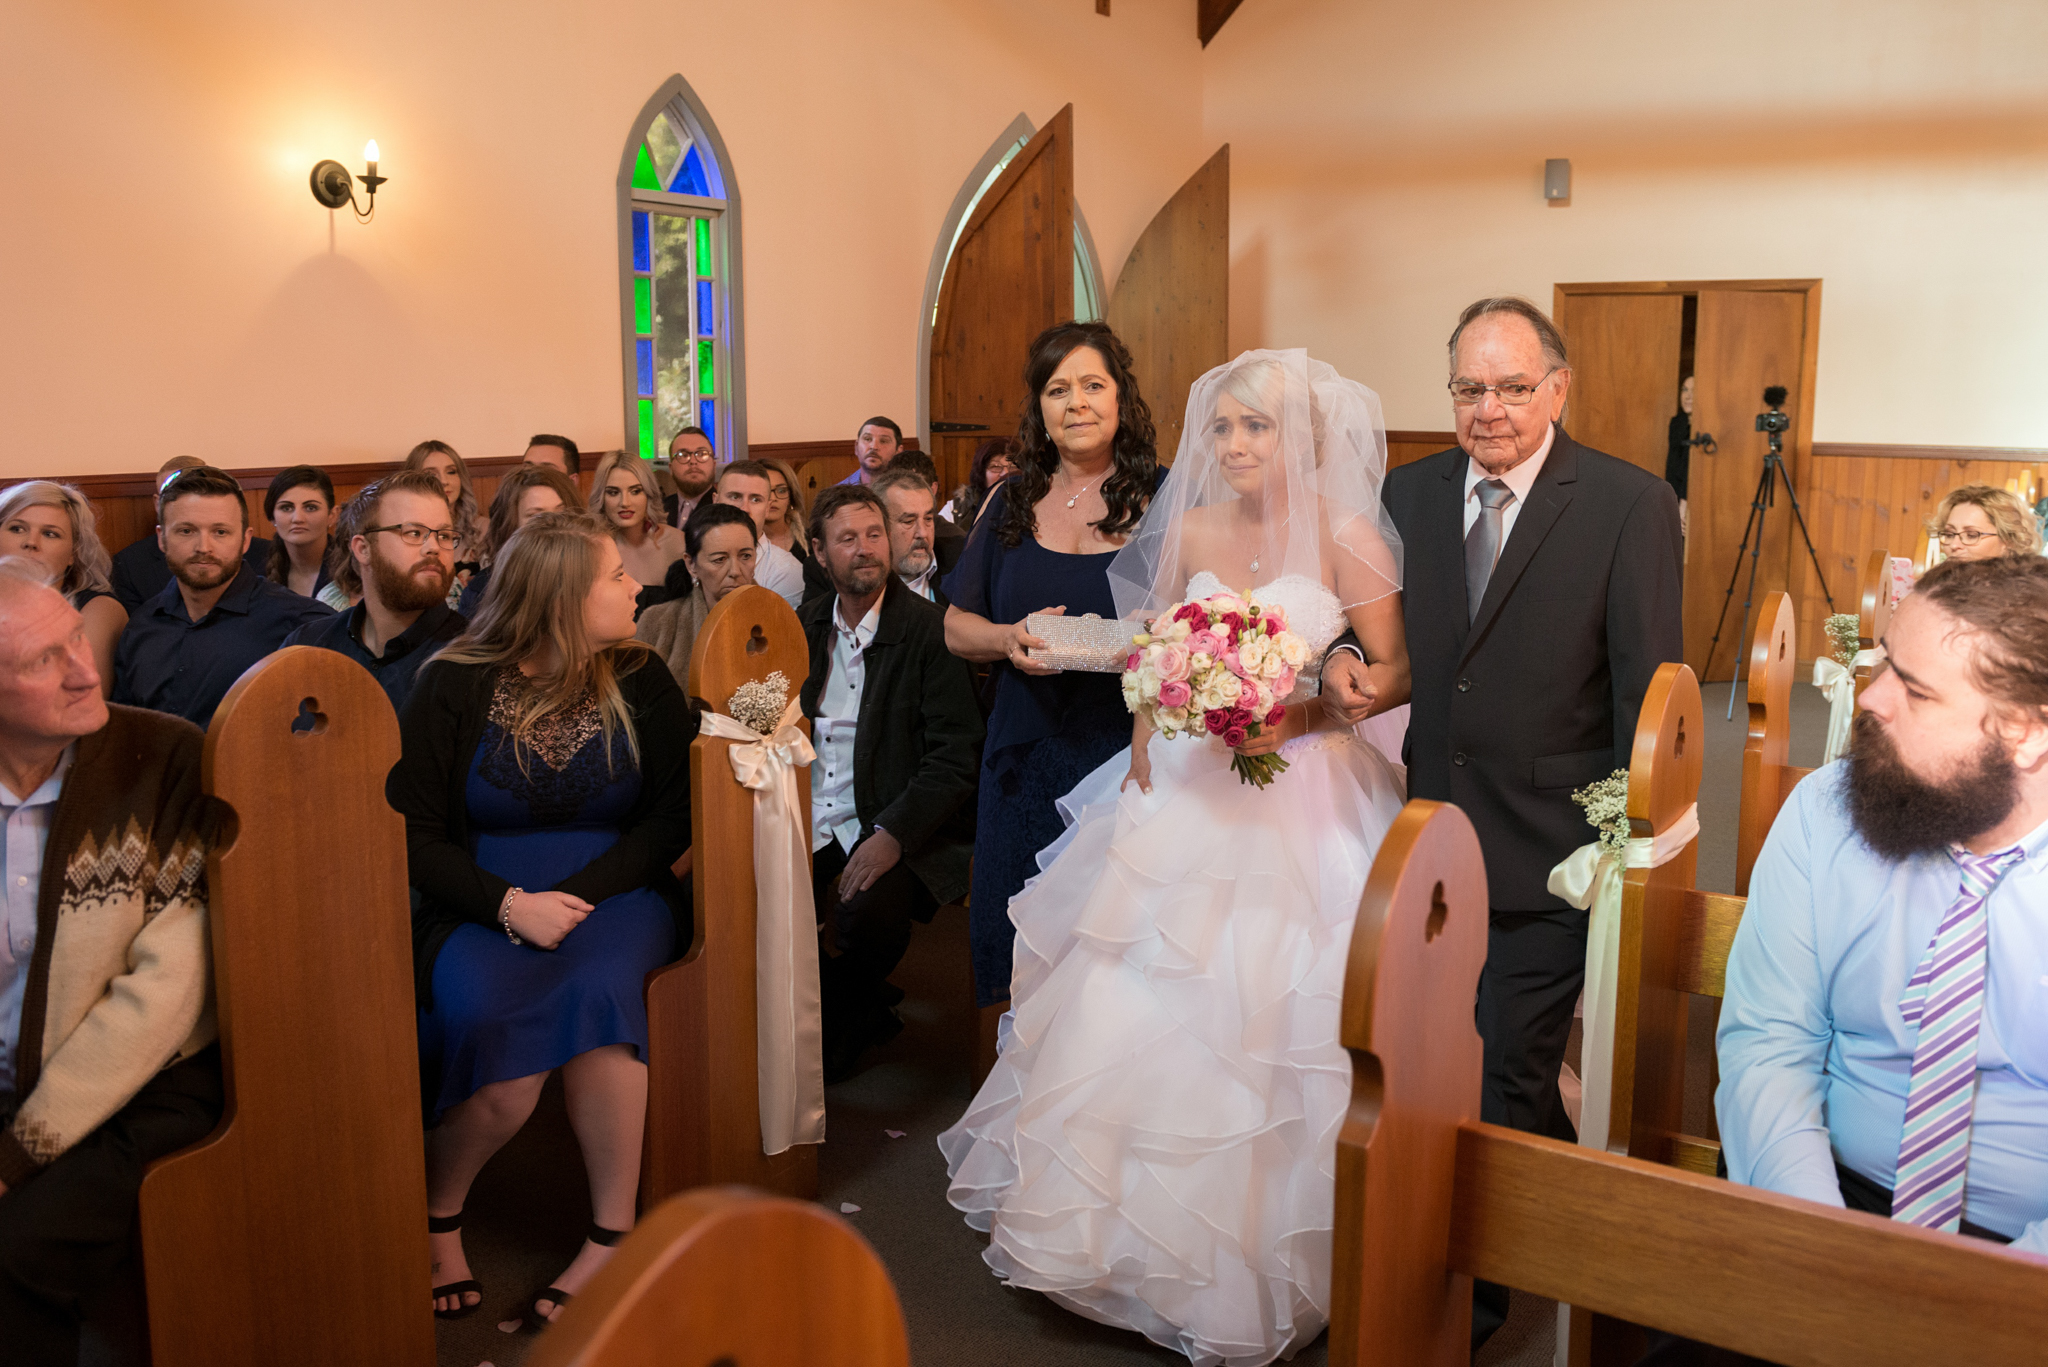 Ben-&-Kaylee-Wedding21.jpg